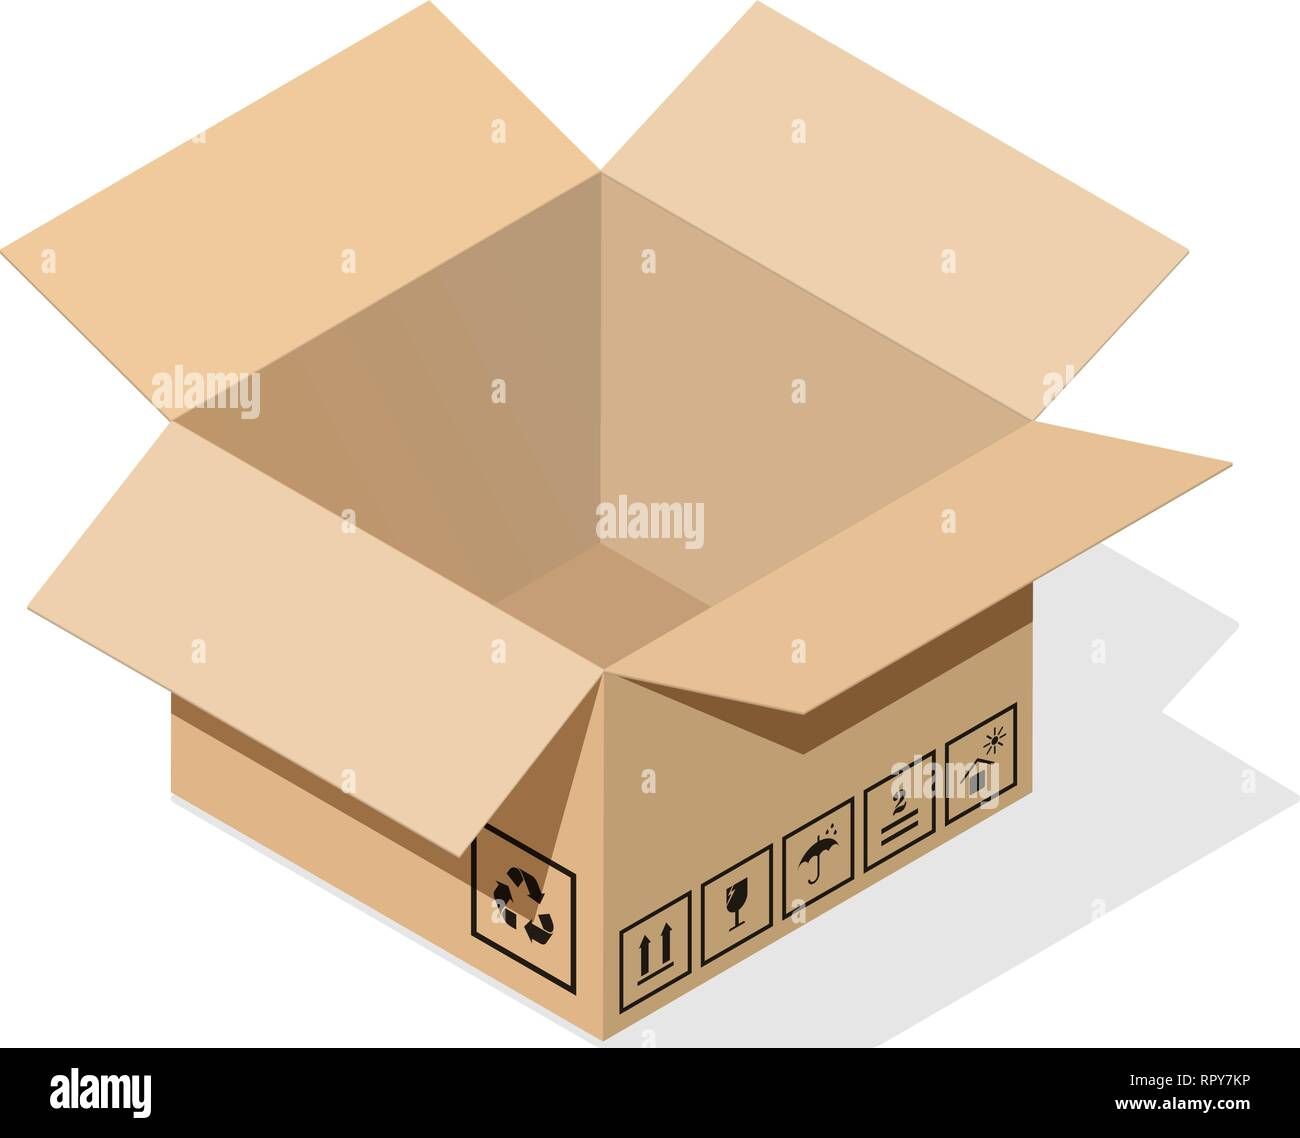 Open 3d cardboard box in isometric style with flat shadow. Plus a set of basic informational signs and packaging and product requirements. EPS10 - Stock Vector